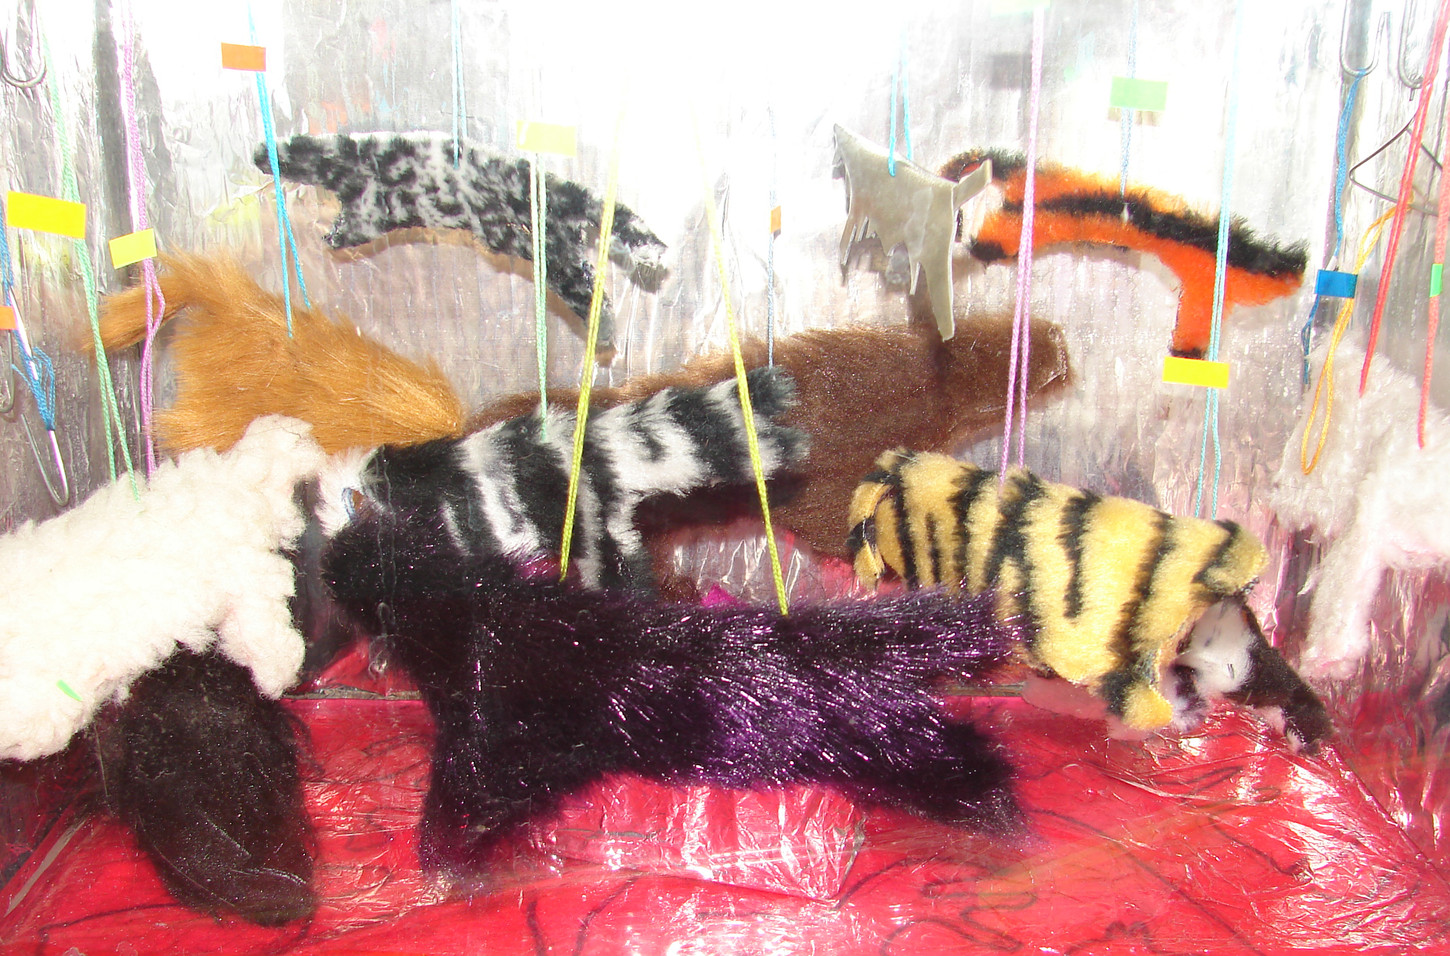 Aquarium - Shop Window3.jpg